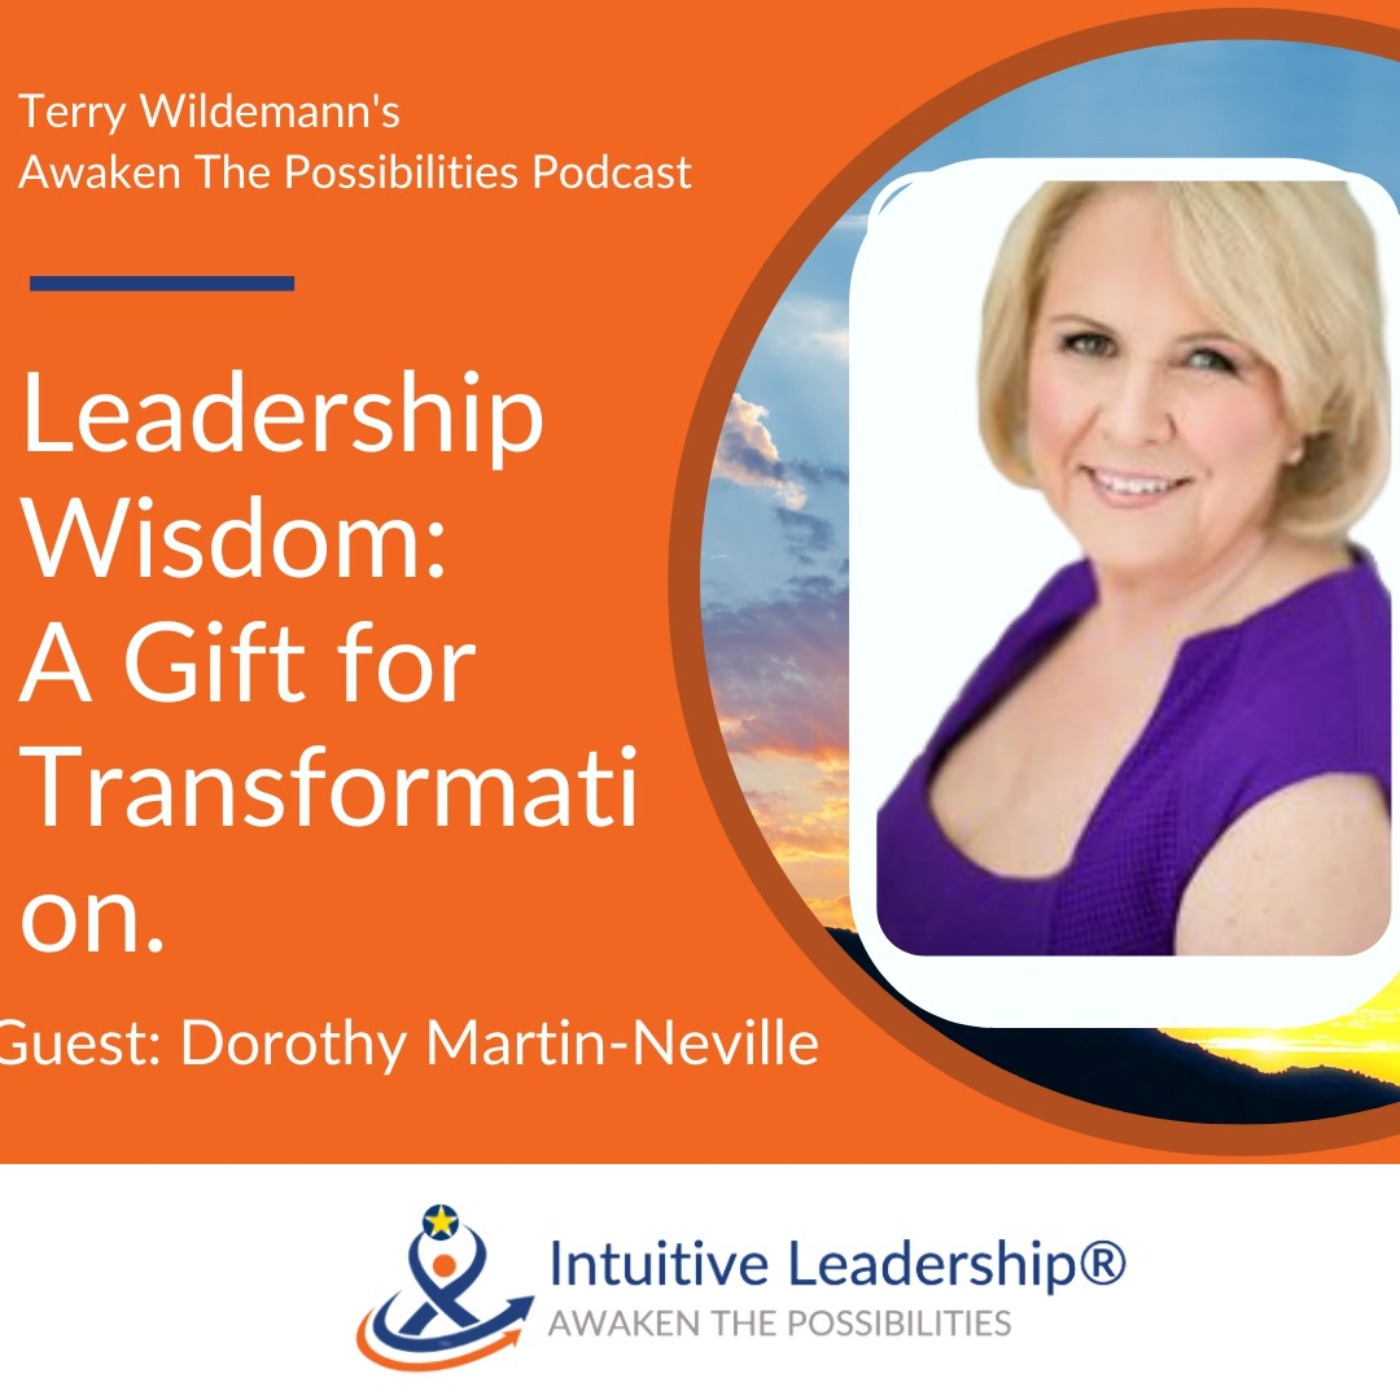 Awaken The Possibilities: Leadership Wisdom; A Gift for Transformation